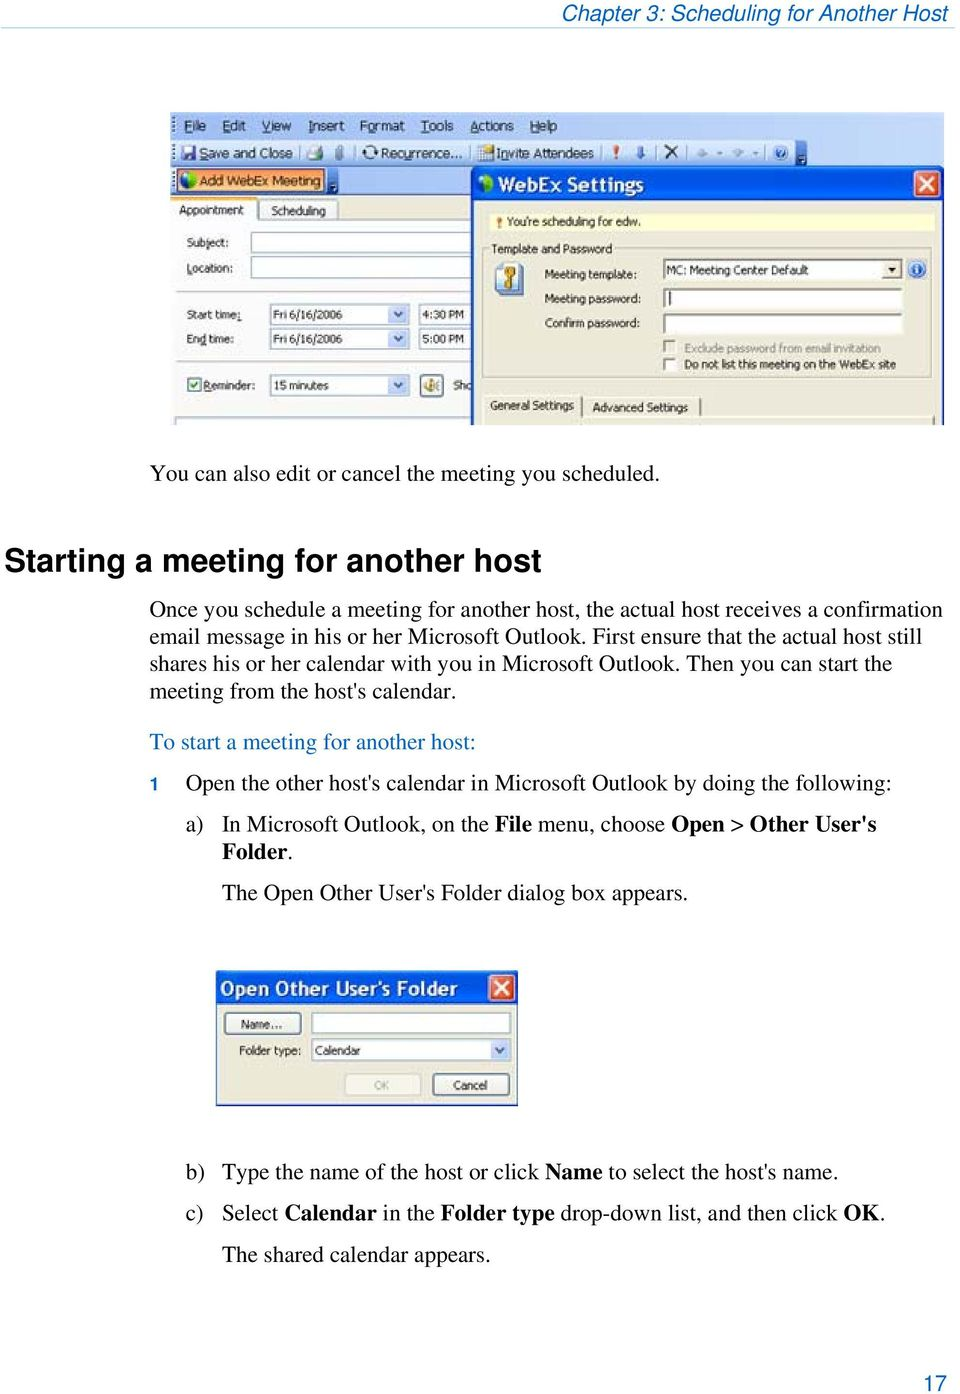 First ensure that the actual host still shares his or her calendar with you in Microsoft Outlook. Then you can start the meeting from the host's calendar.